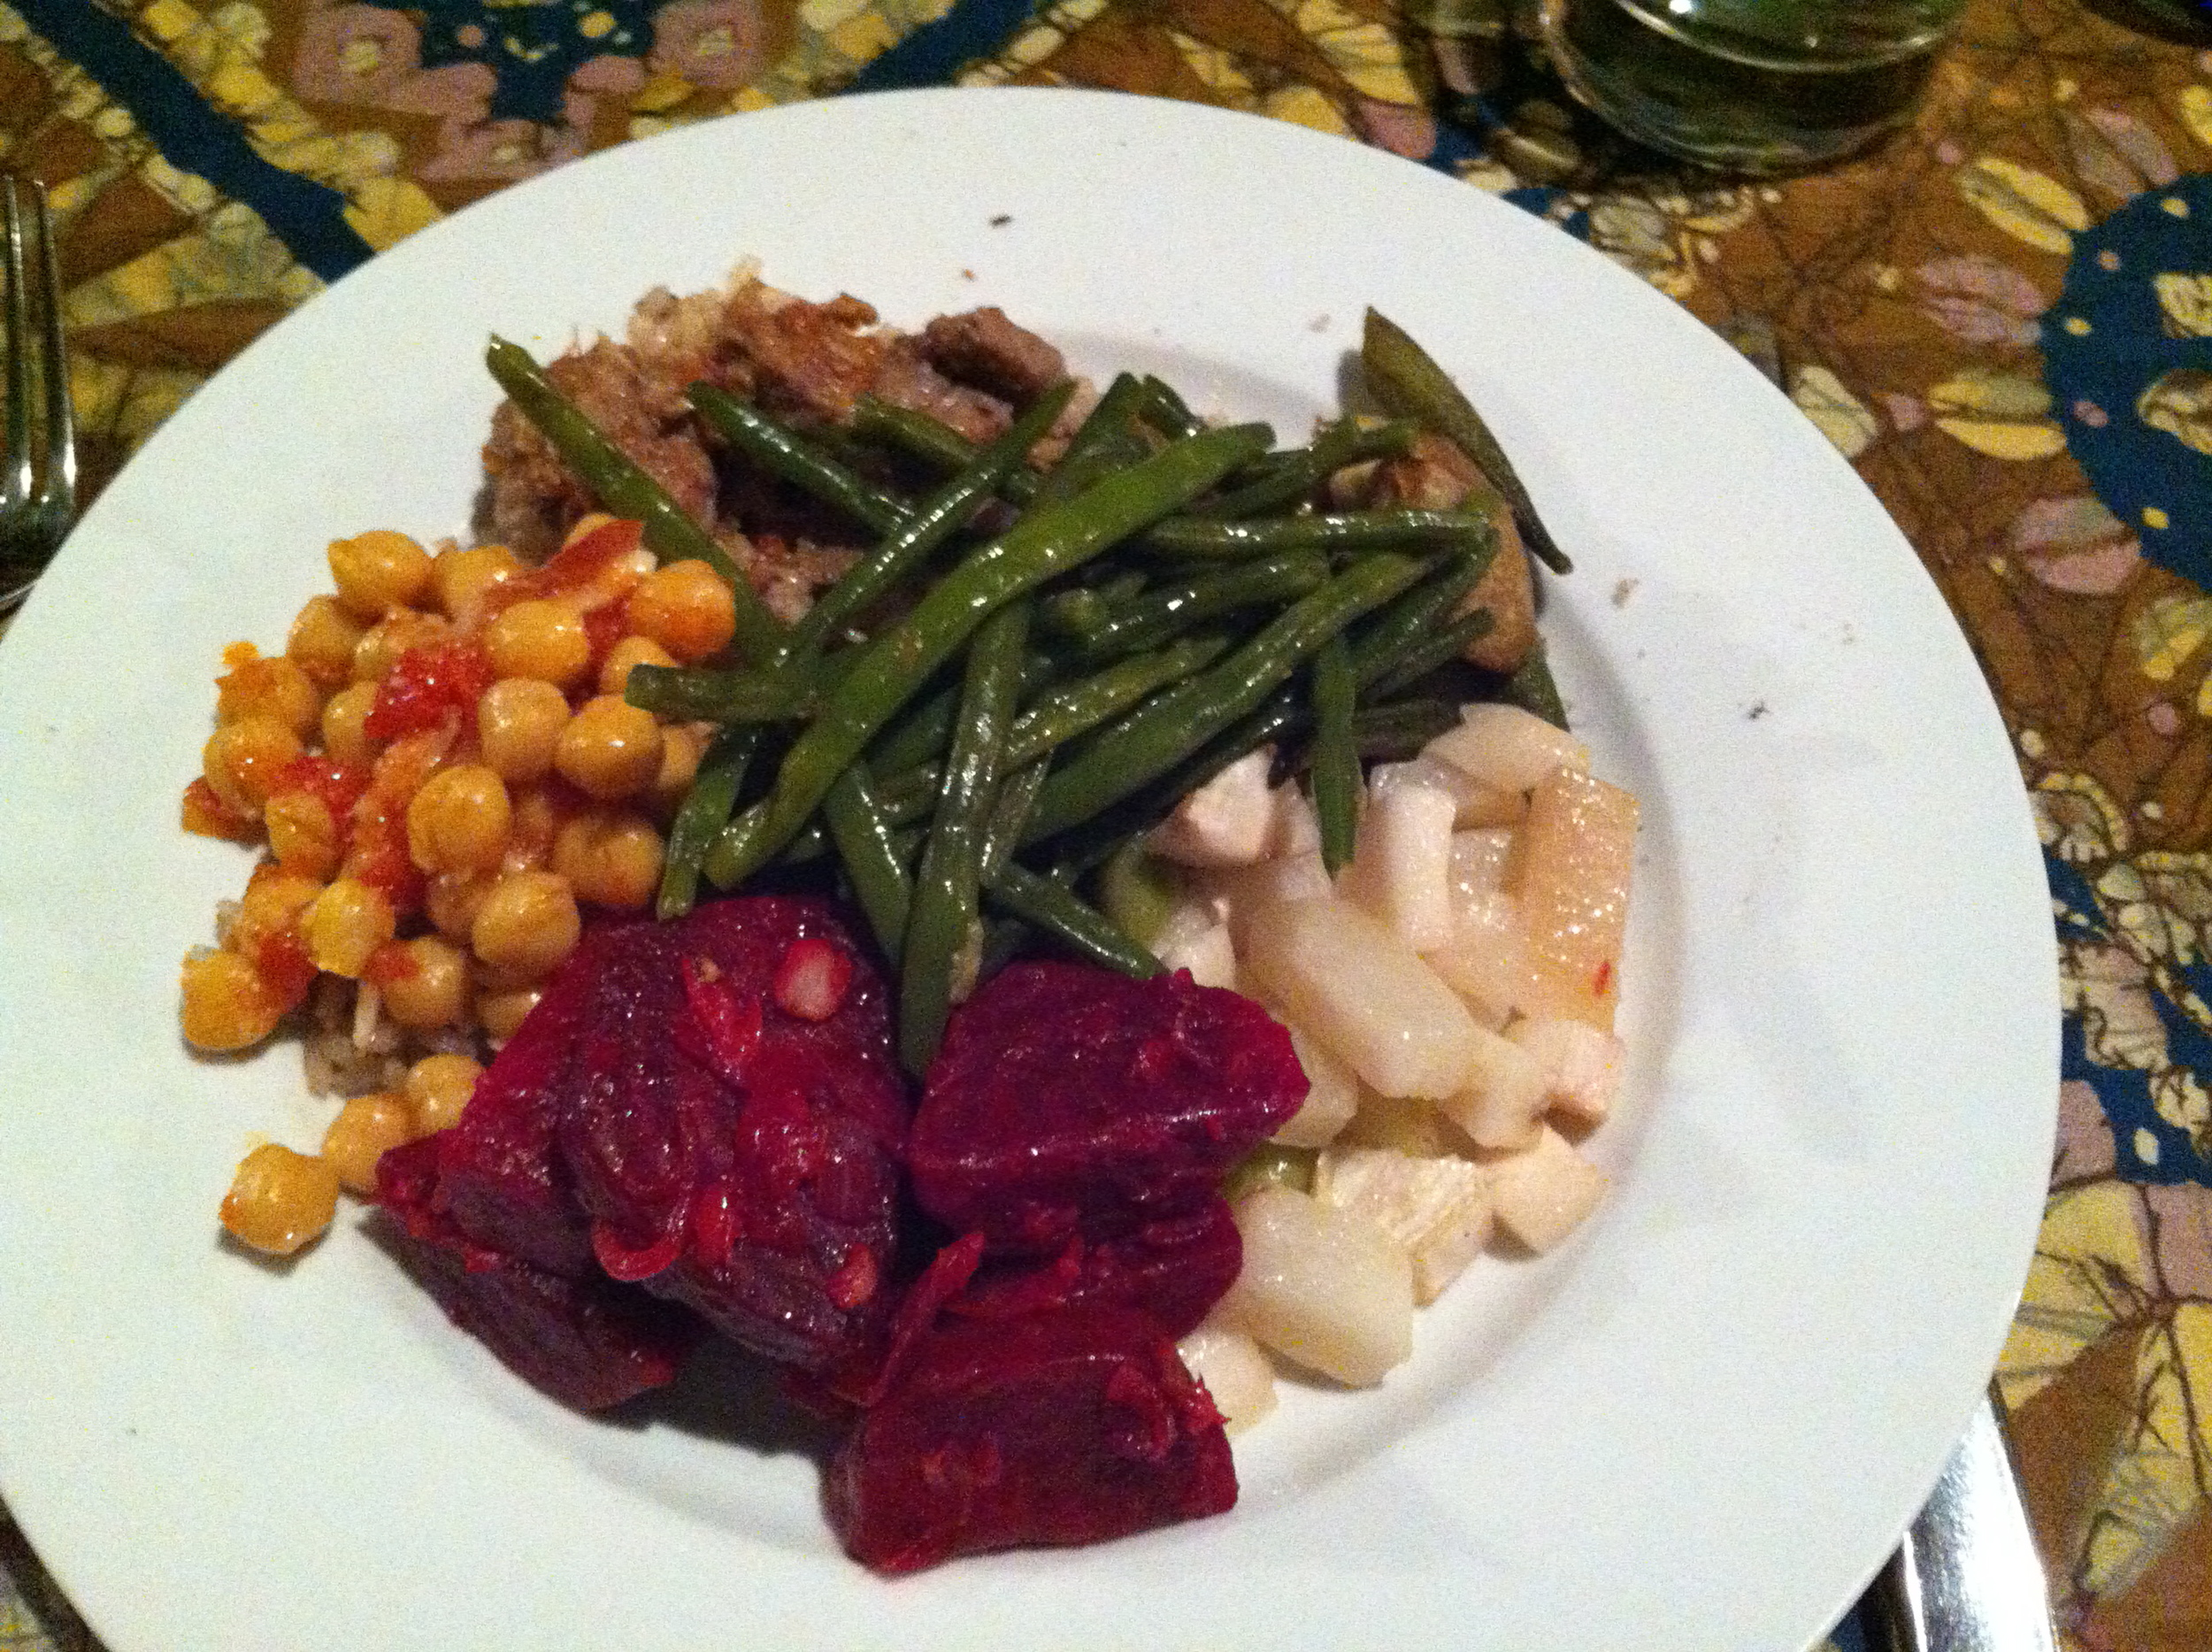 An example of our amazing meals. Plenty of vegetables from the garden to fill our bellies.